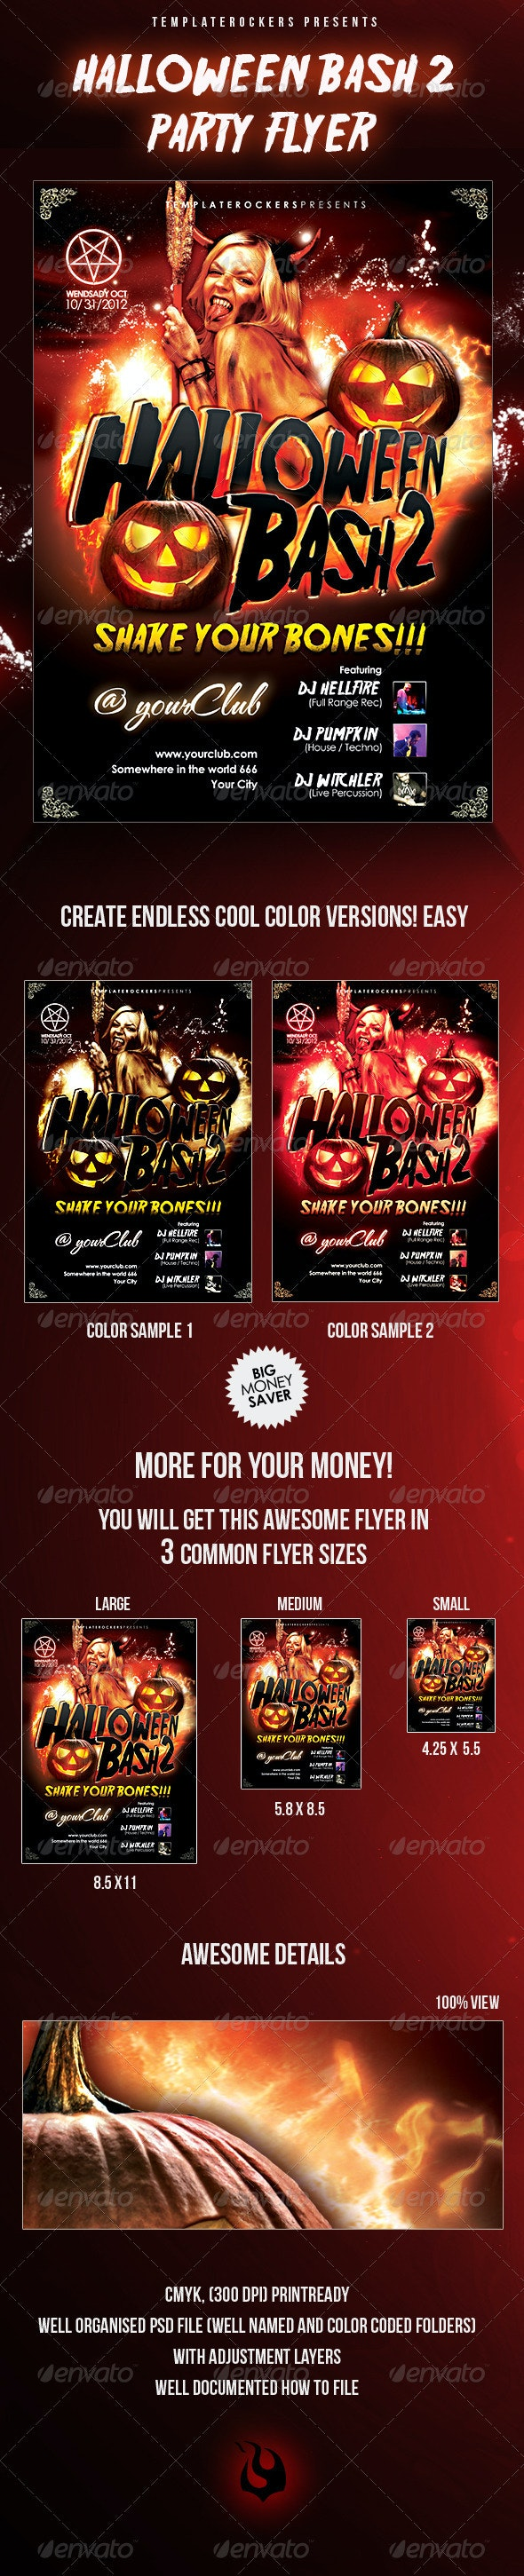 Halloween Bash 2 Party Flyer - 3 Sizes - Clubs & Parties Events